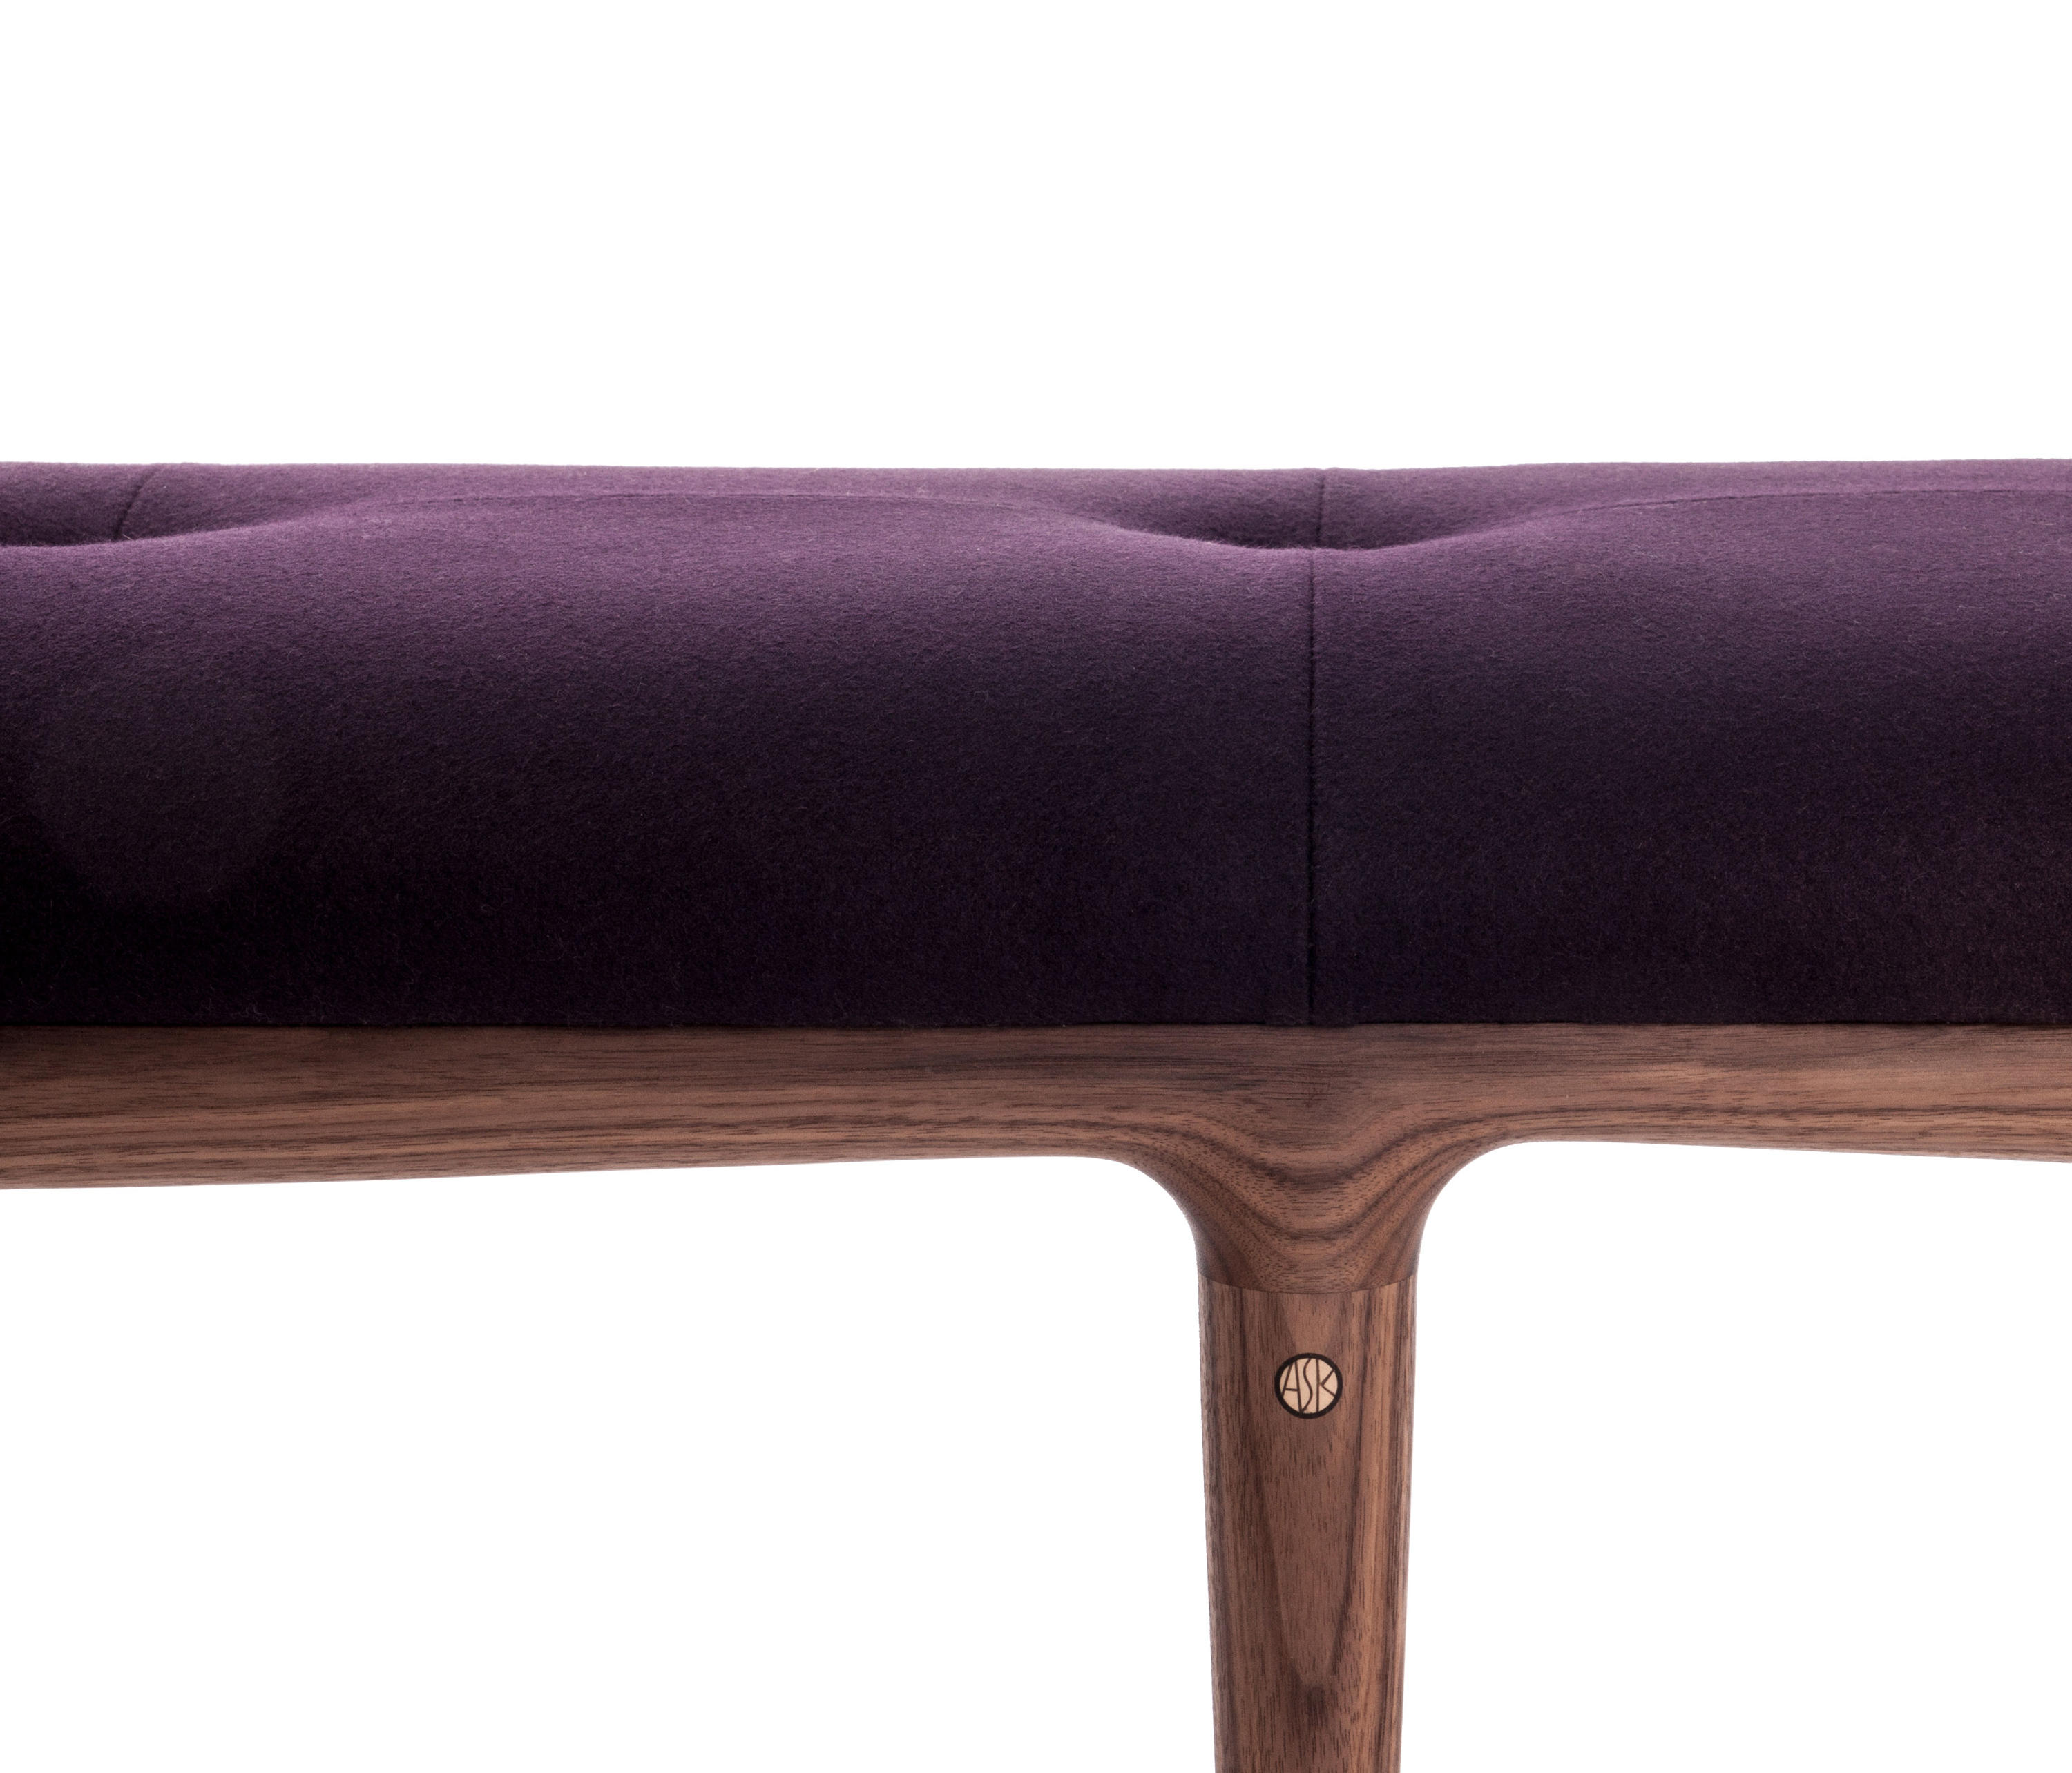 Dormo Bench By ASK EMIL